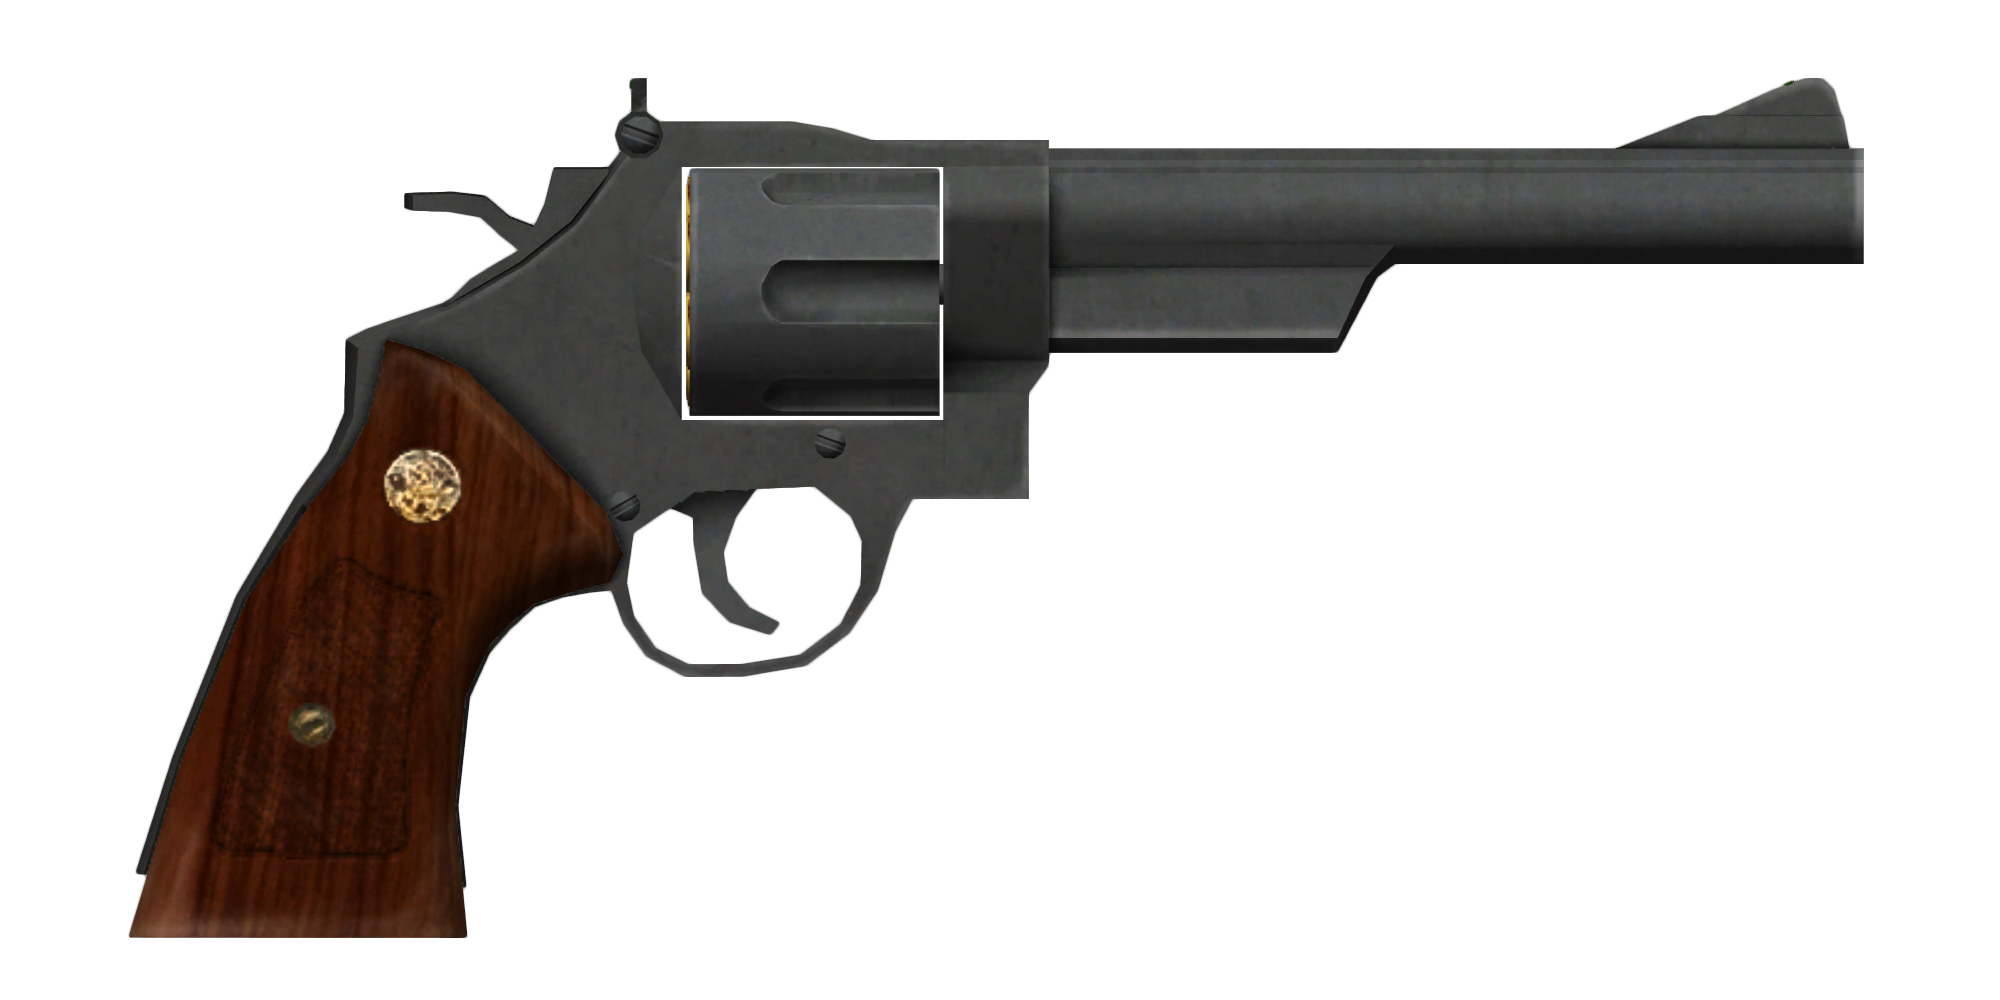 Anime gun revolver png. Image magnum with heavy